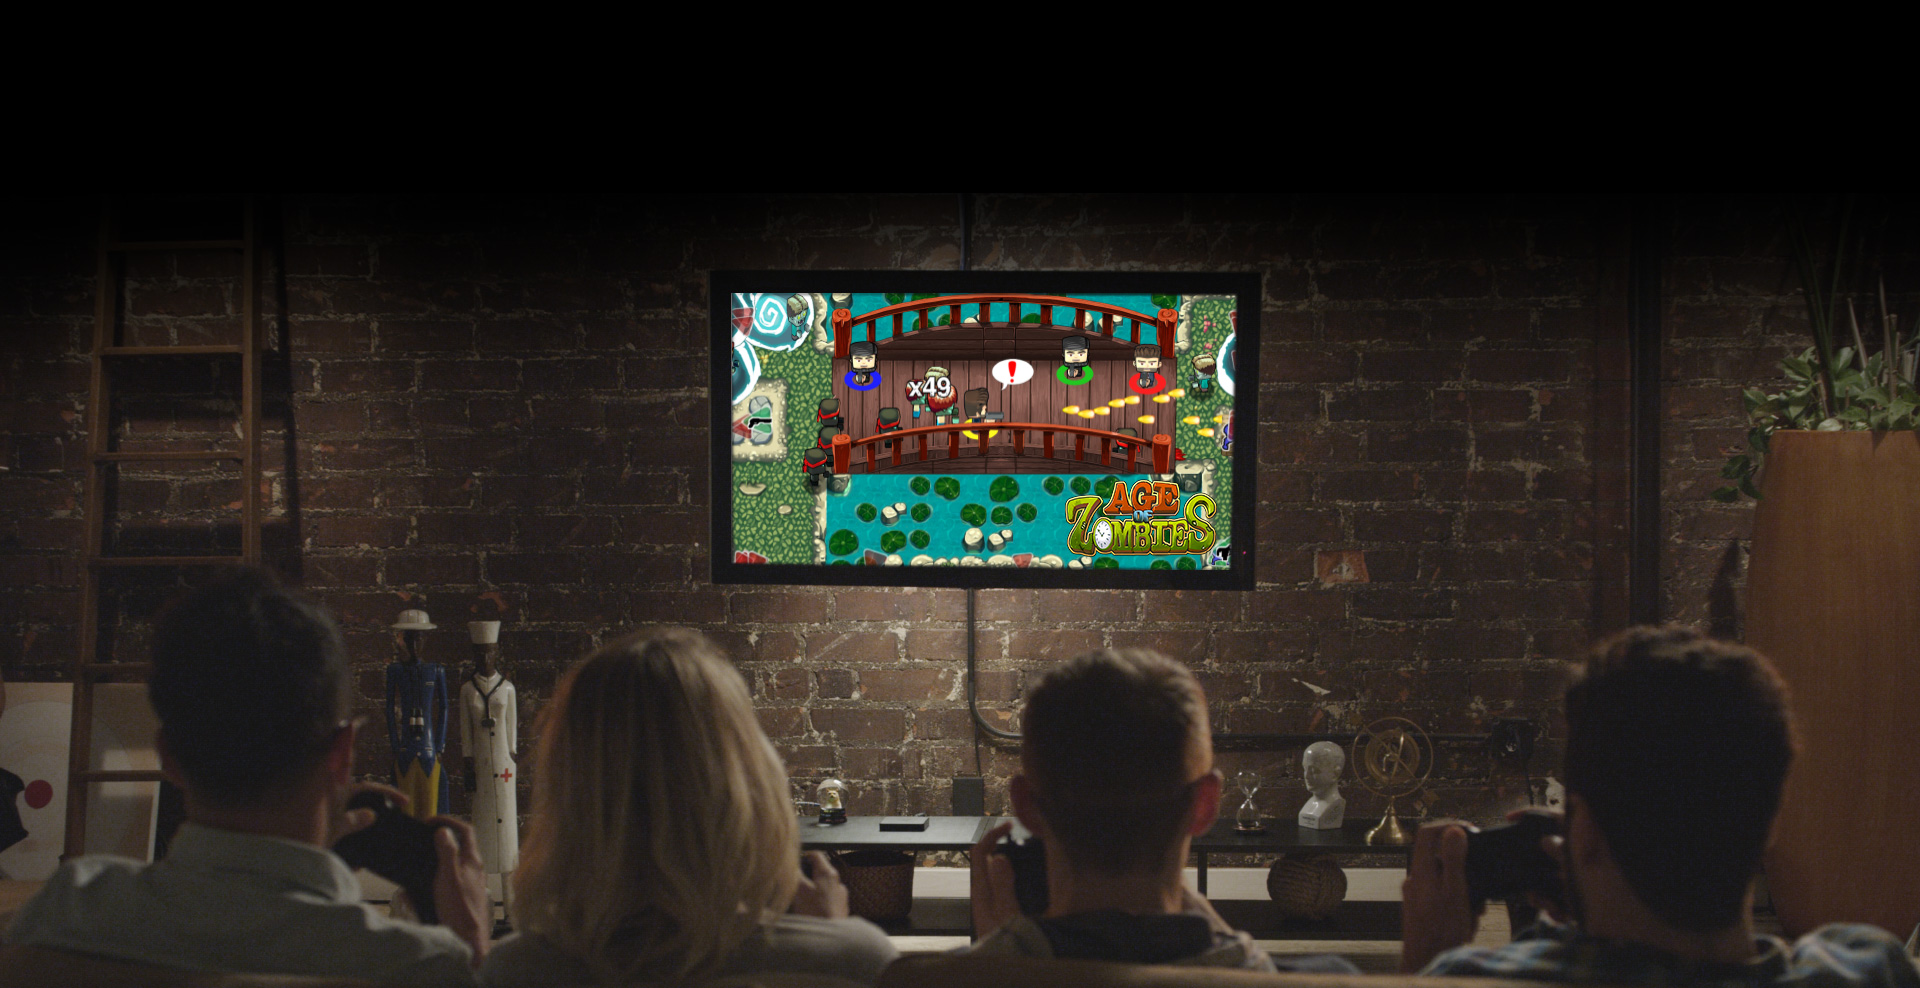 Razer Forge TV bring gaming to the big screen